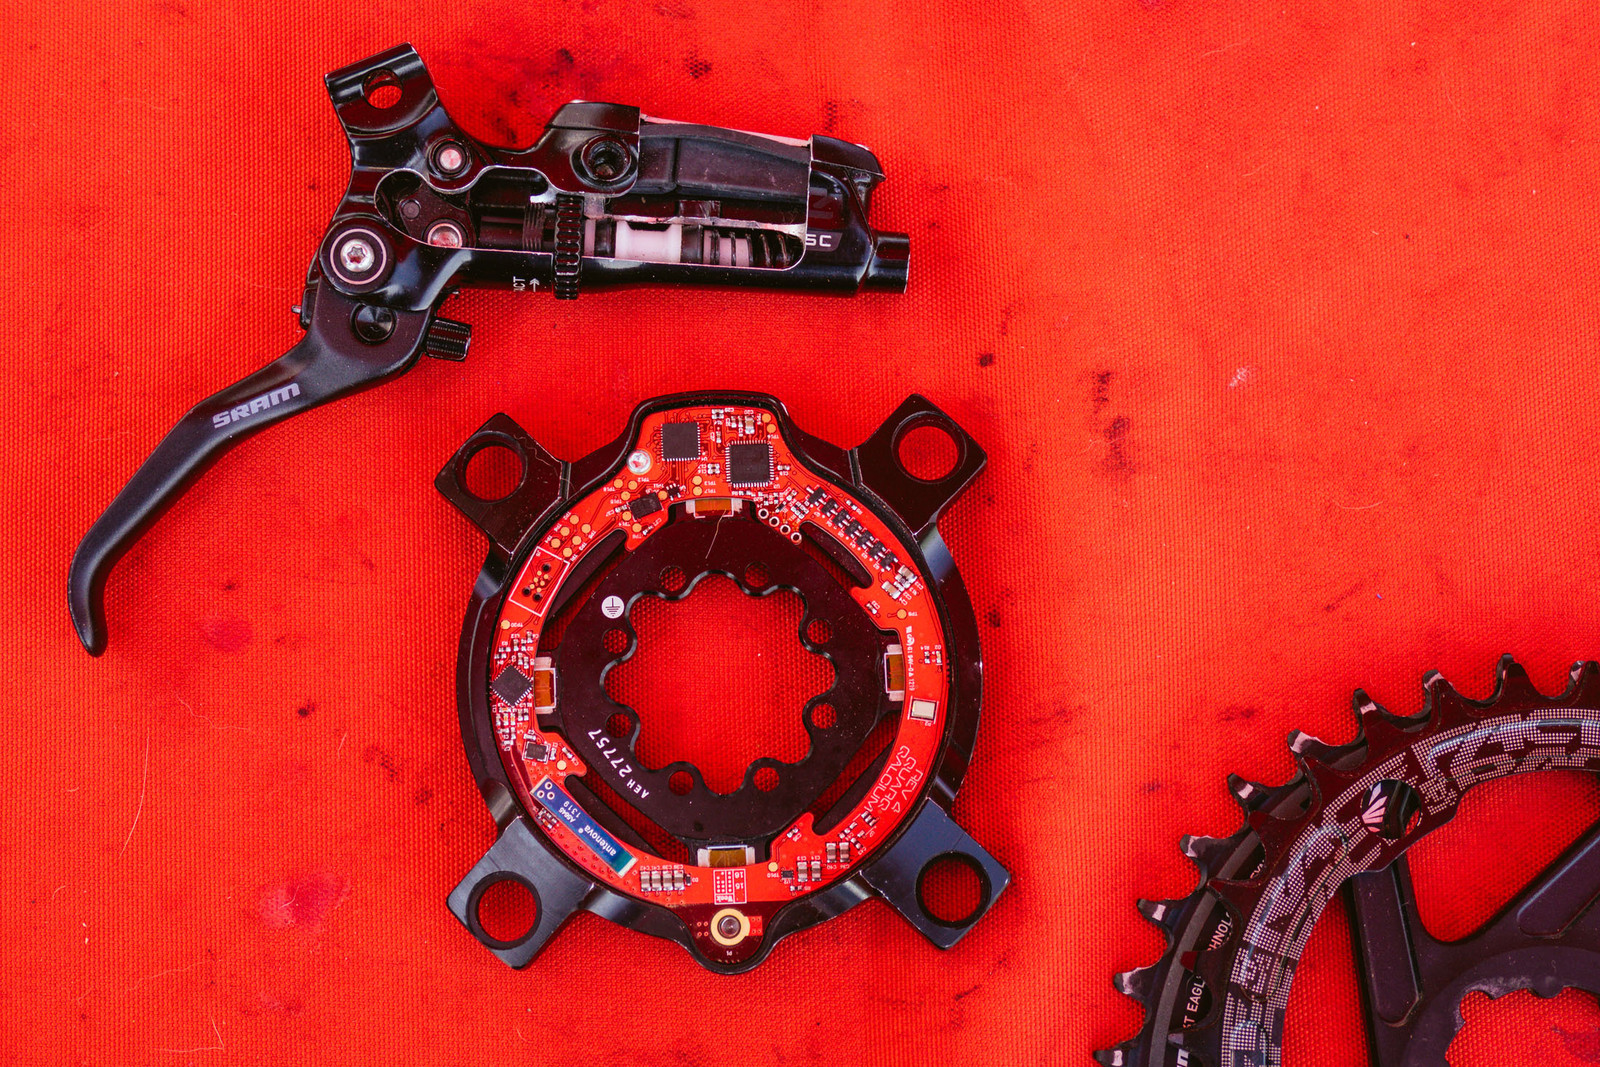 Inside SRAM's Brakes and Quarq's Power Meter - PIT BITS - Fresh Products from the Sedona Mountain Bike Festival - Mountain Biking Pictures - Vital MTB